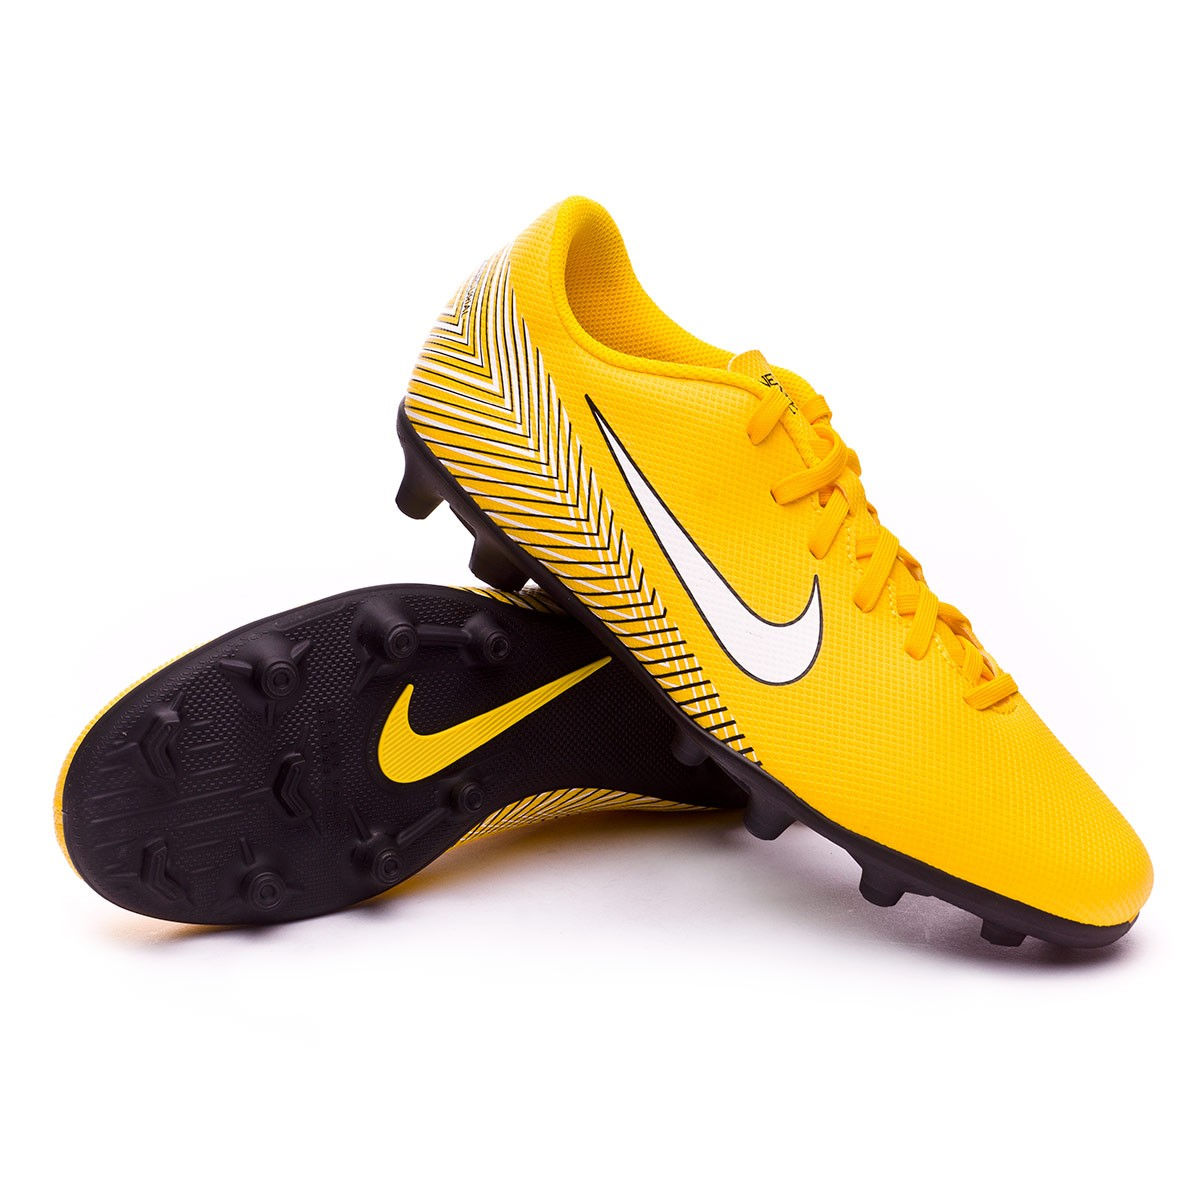 9c692ae689b Boot Nike Mercurial Vapor XII Club MG Neymar Yellow-Black - Football ...